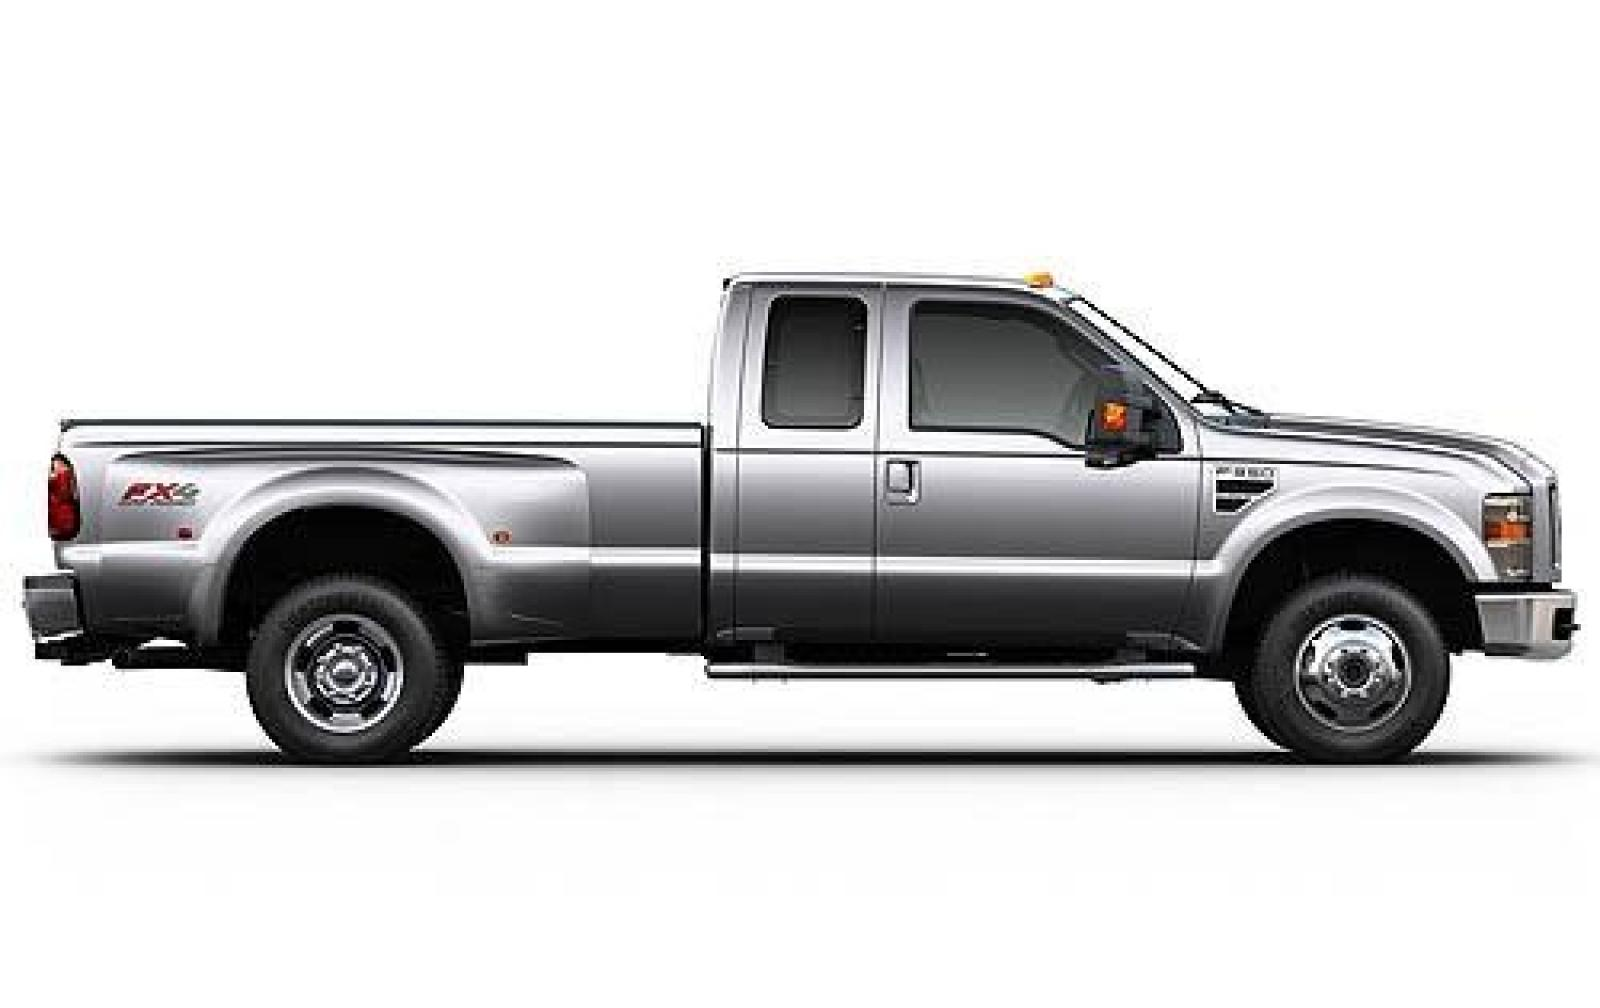 2010 ford f 350 super duty information and photos zombiedrive. Black Bedroom Furniture Sets. Home Design Ideas